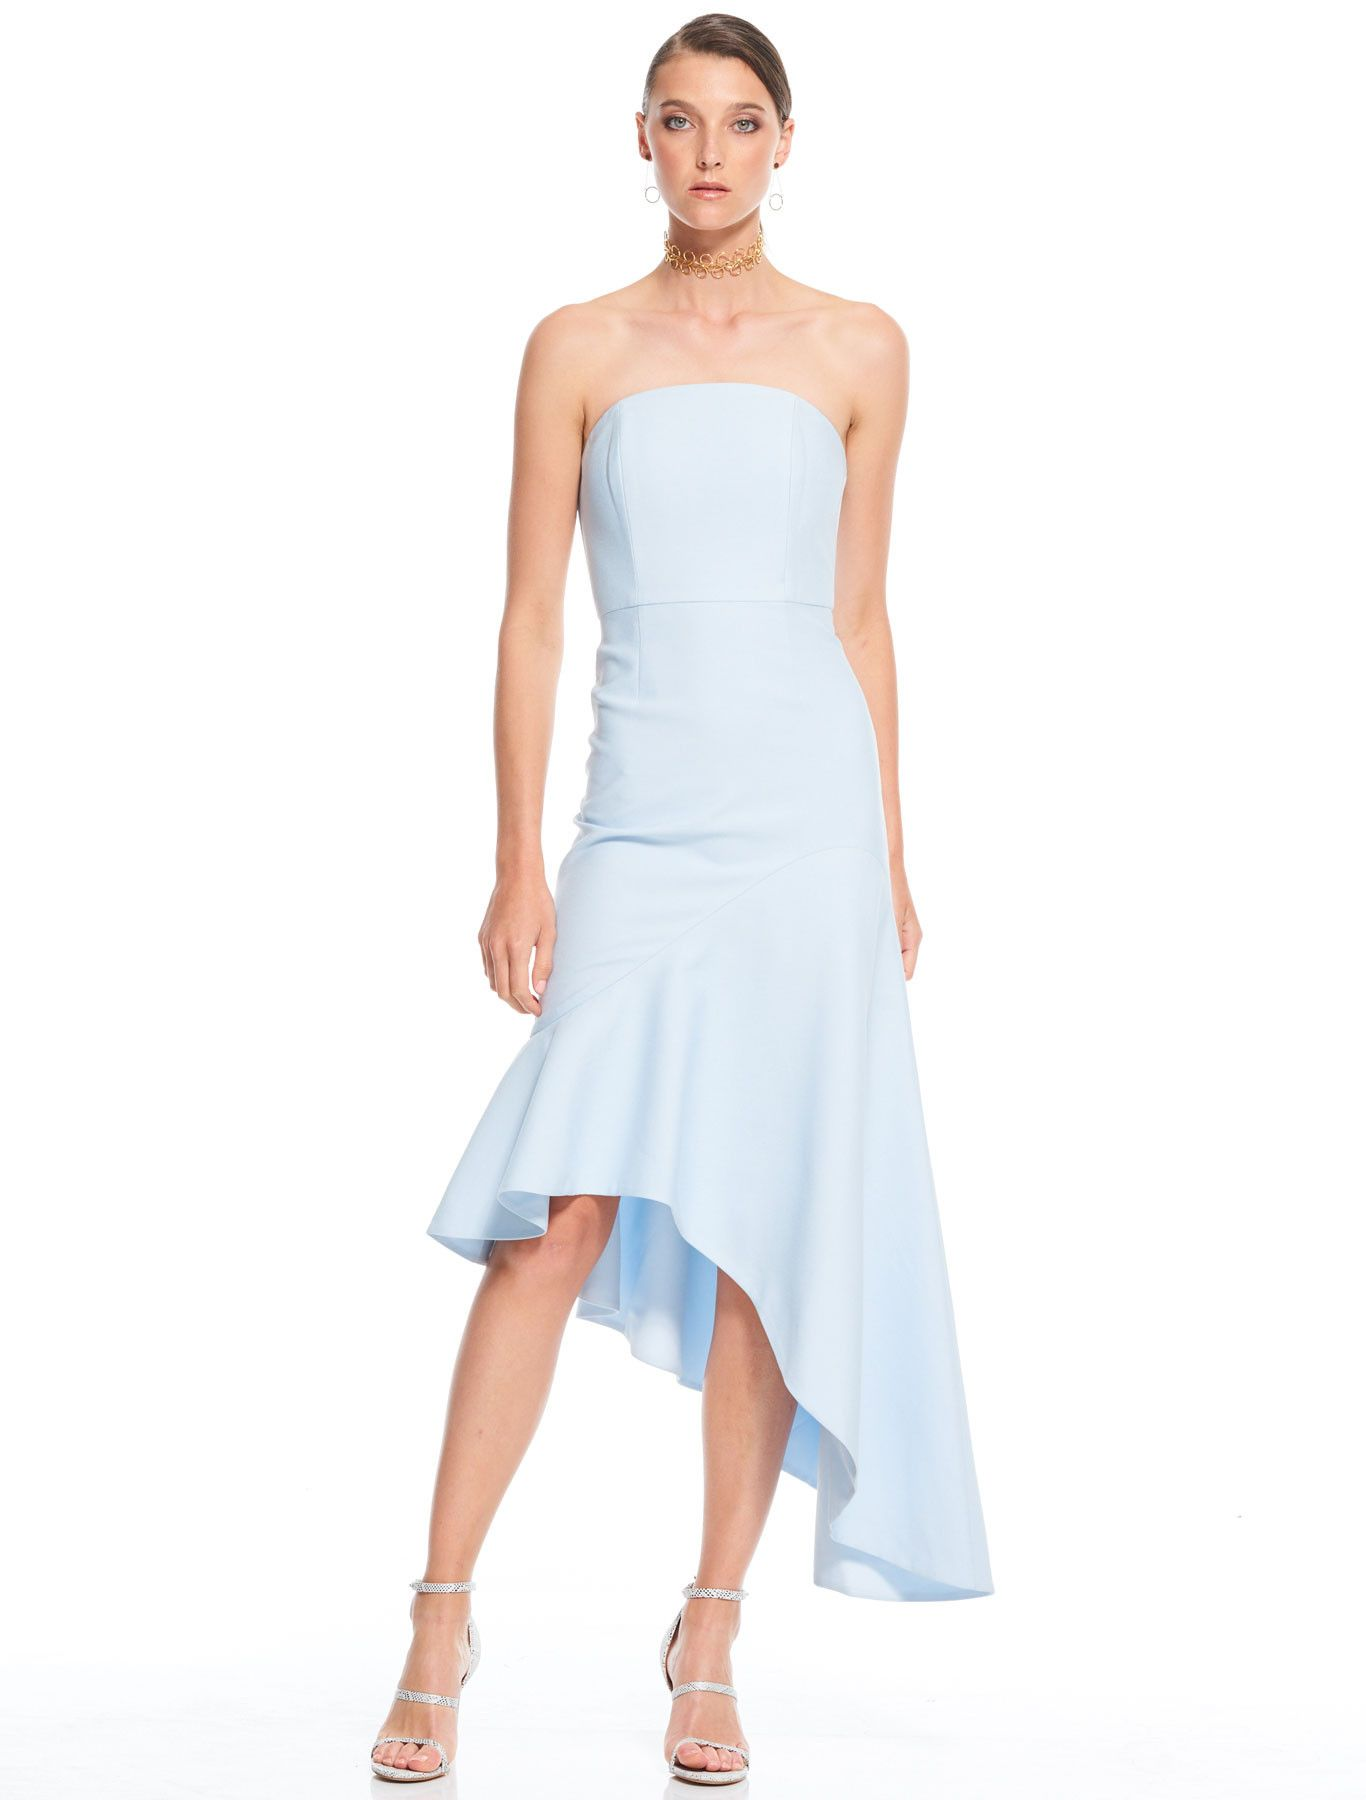 La Maison Talulah Quiet Disposition Asymmetrical Dress This Elegant Design Has A Close Ing Dressblue Fabricwedding Guest